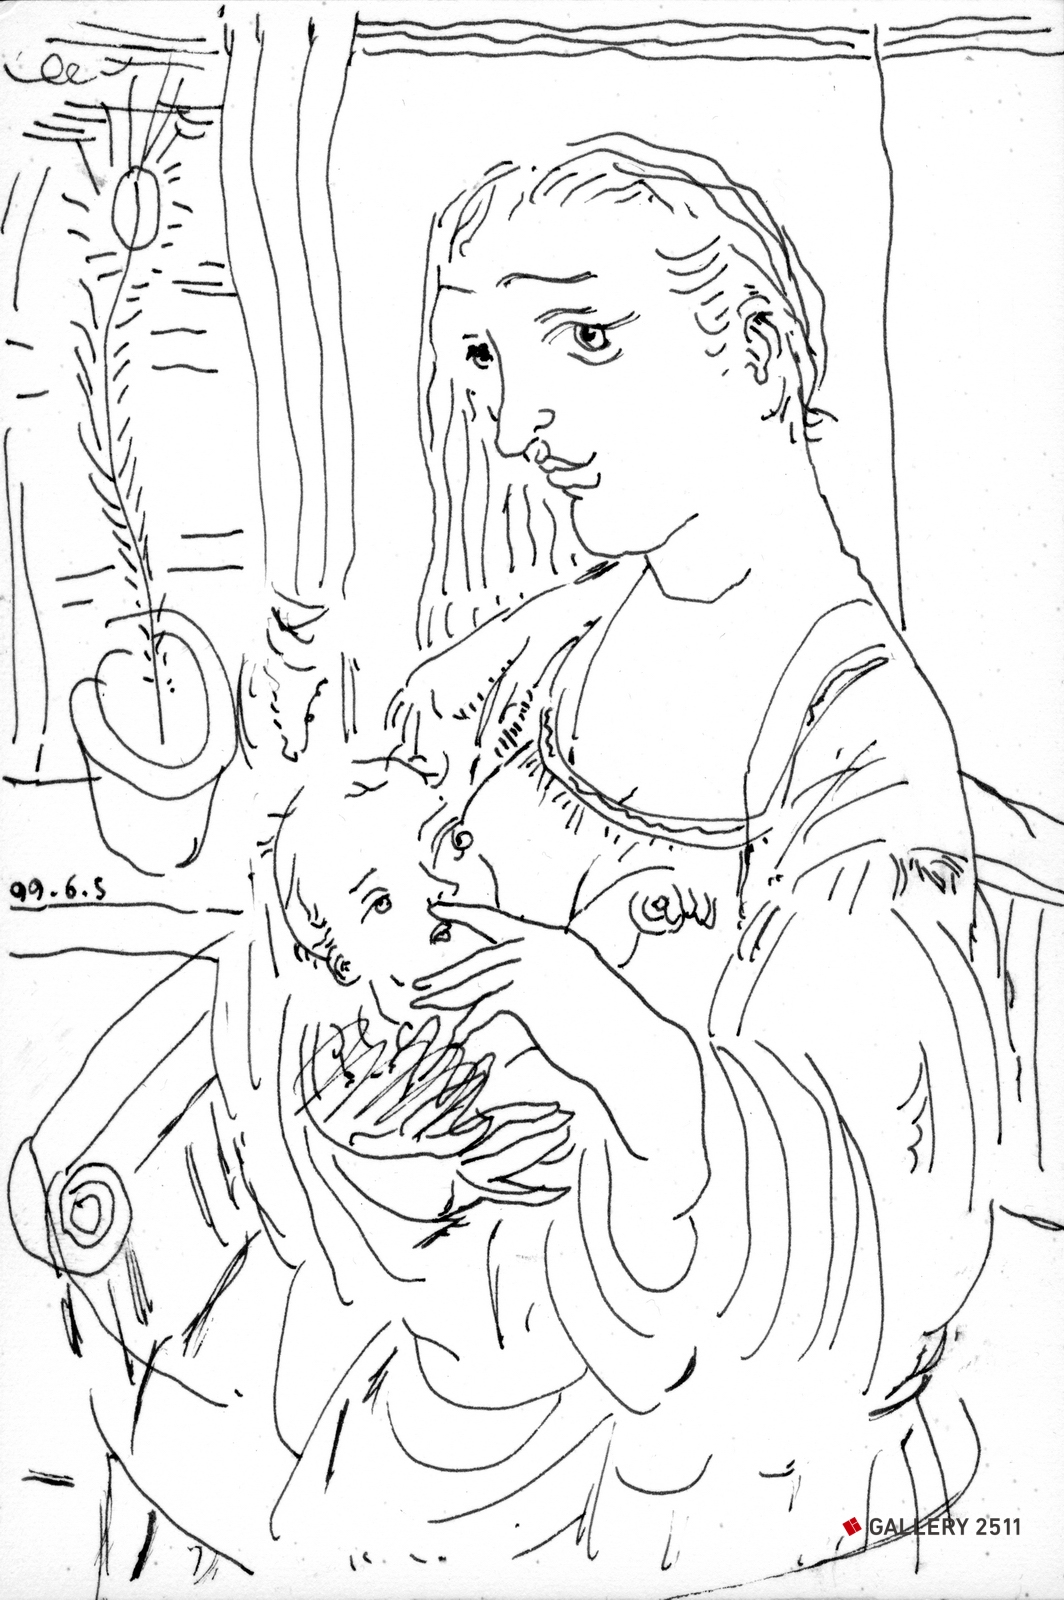 No.145 - 'Mother and child'